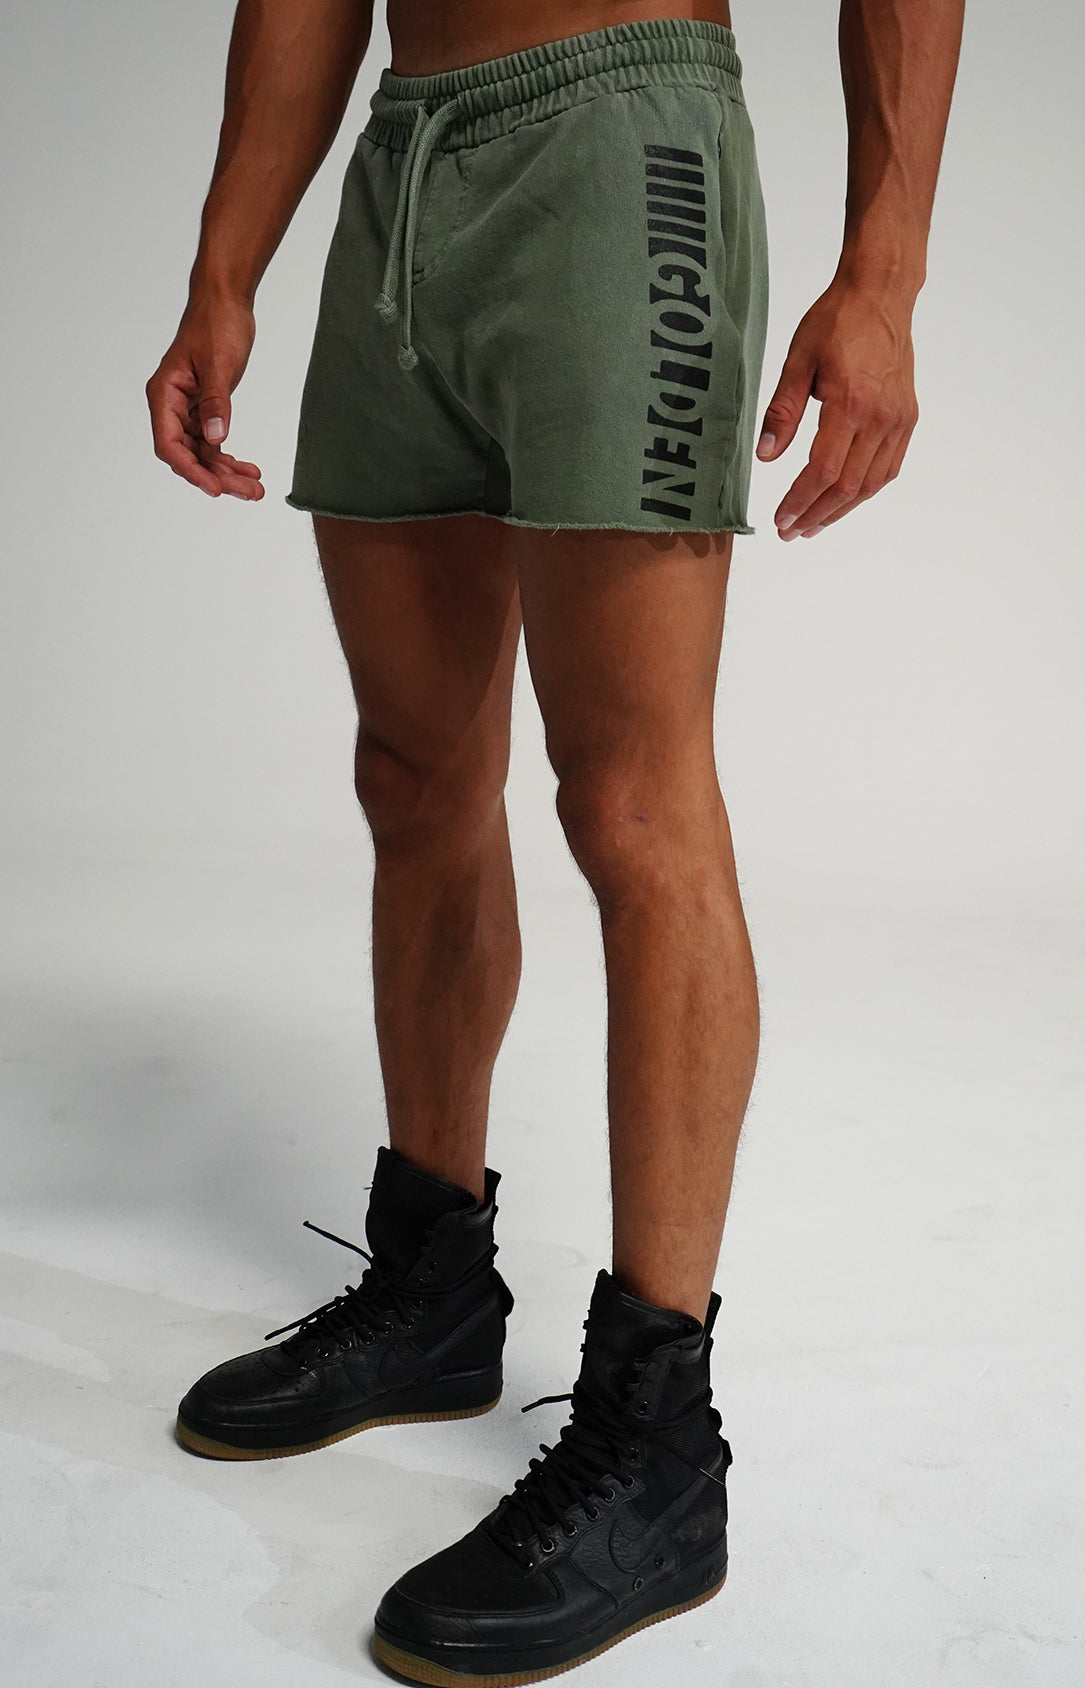 Faded Army Short Classic Shorts